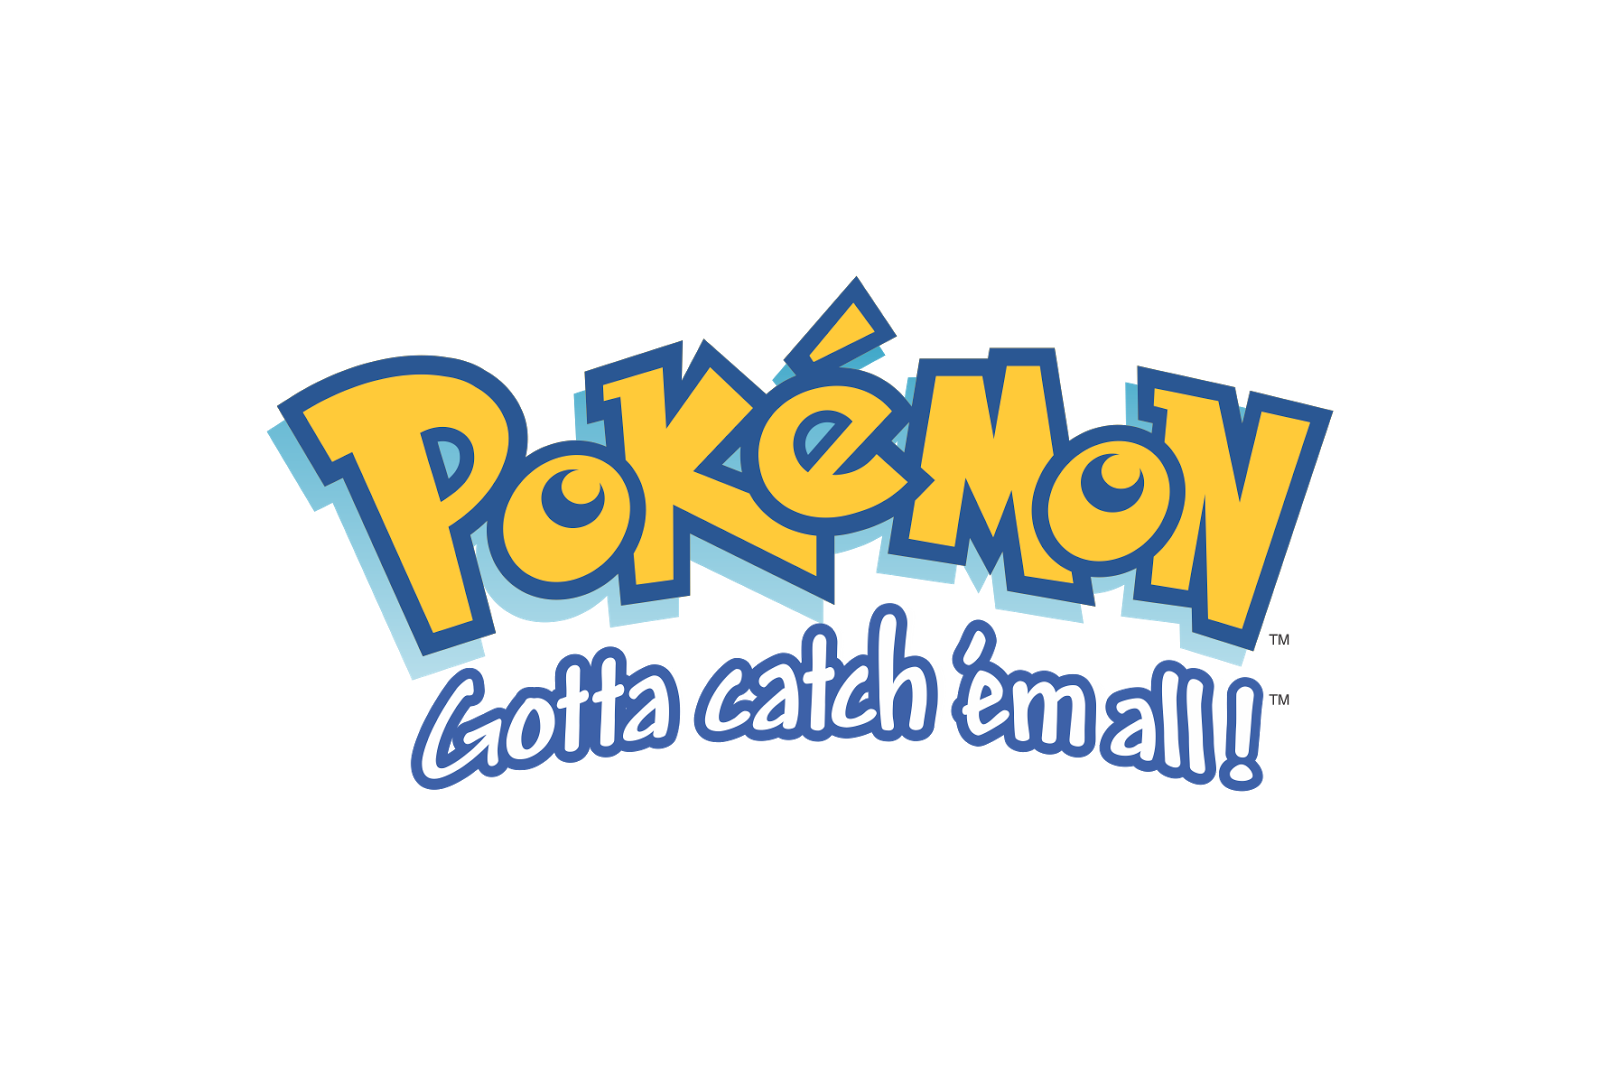 Pokémon Logo - Gotta catch 'em all! | Pokémon Logos | Pinterest | Pokémon